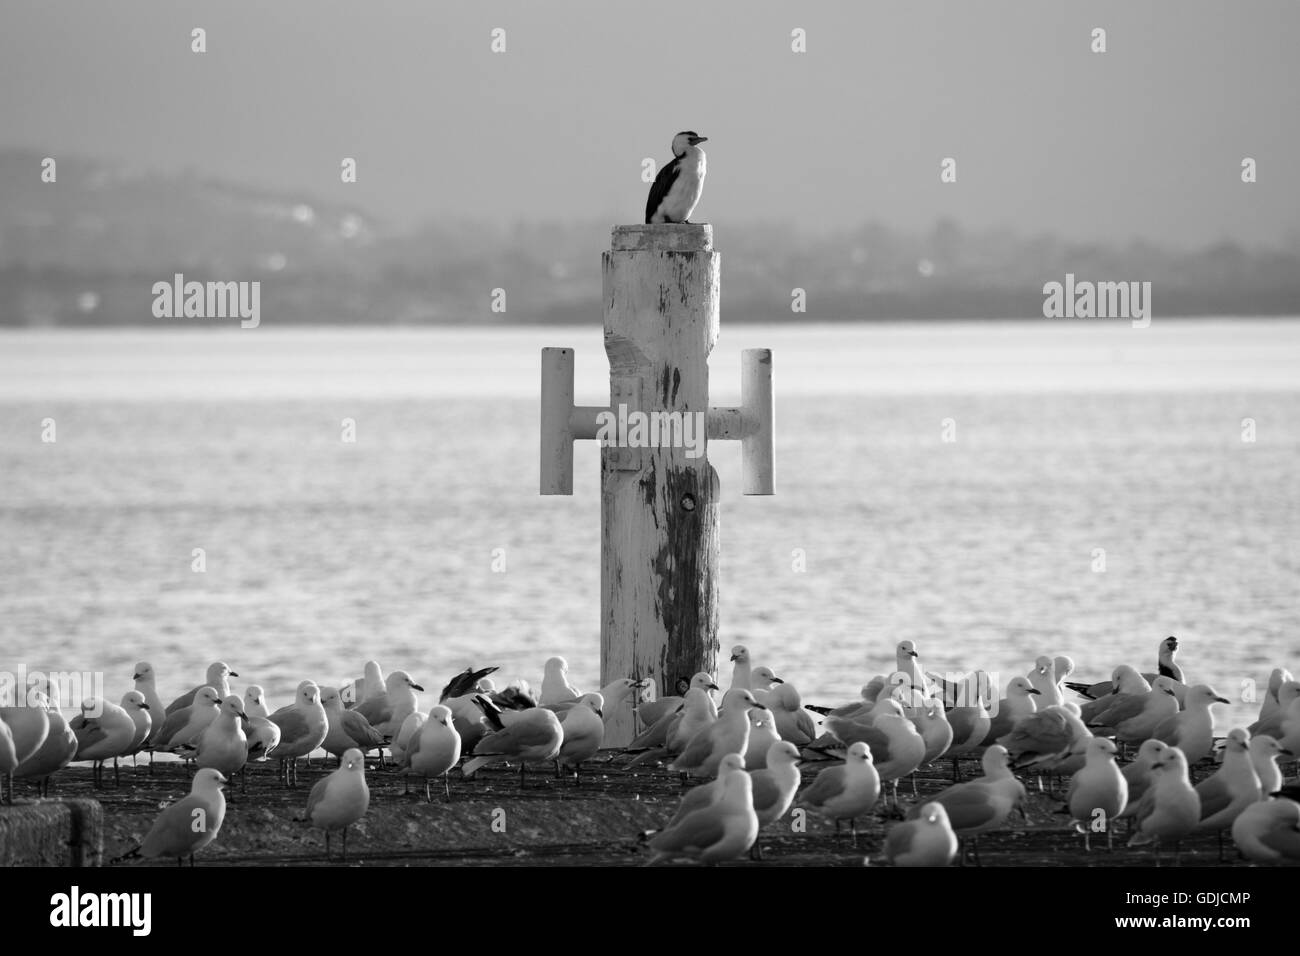 little pied cormorant perched on a bollard - Stock Image